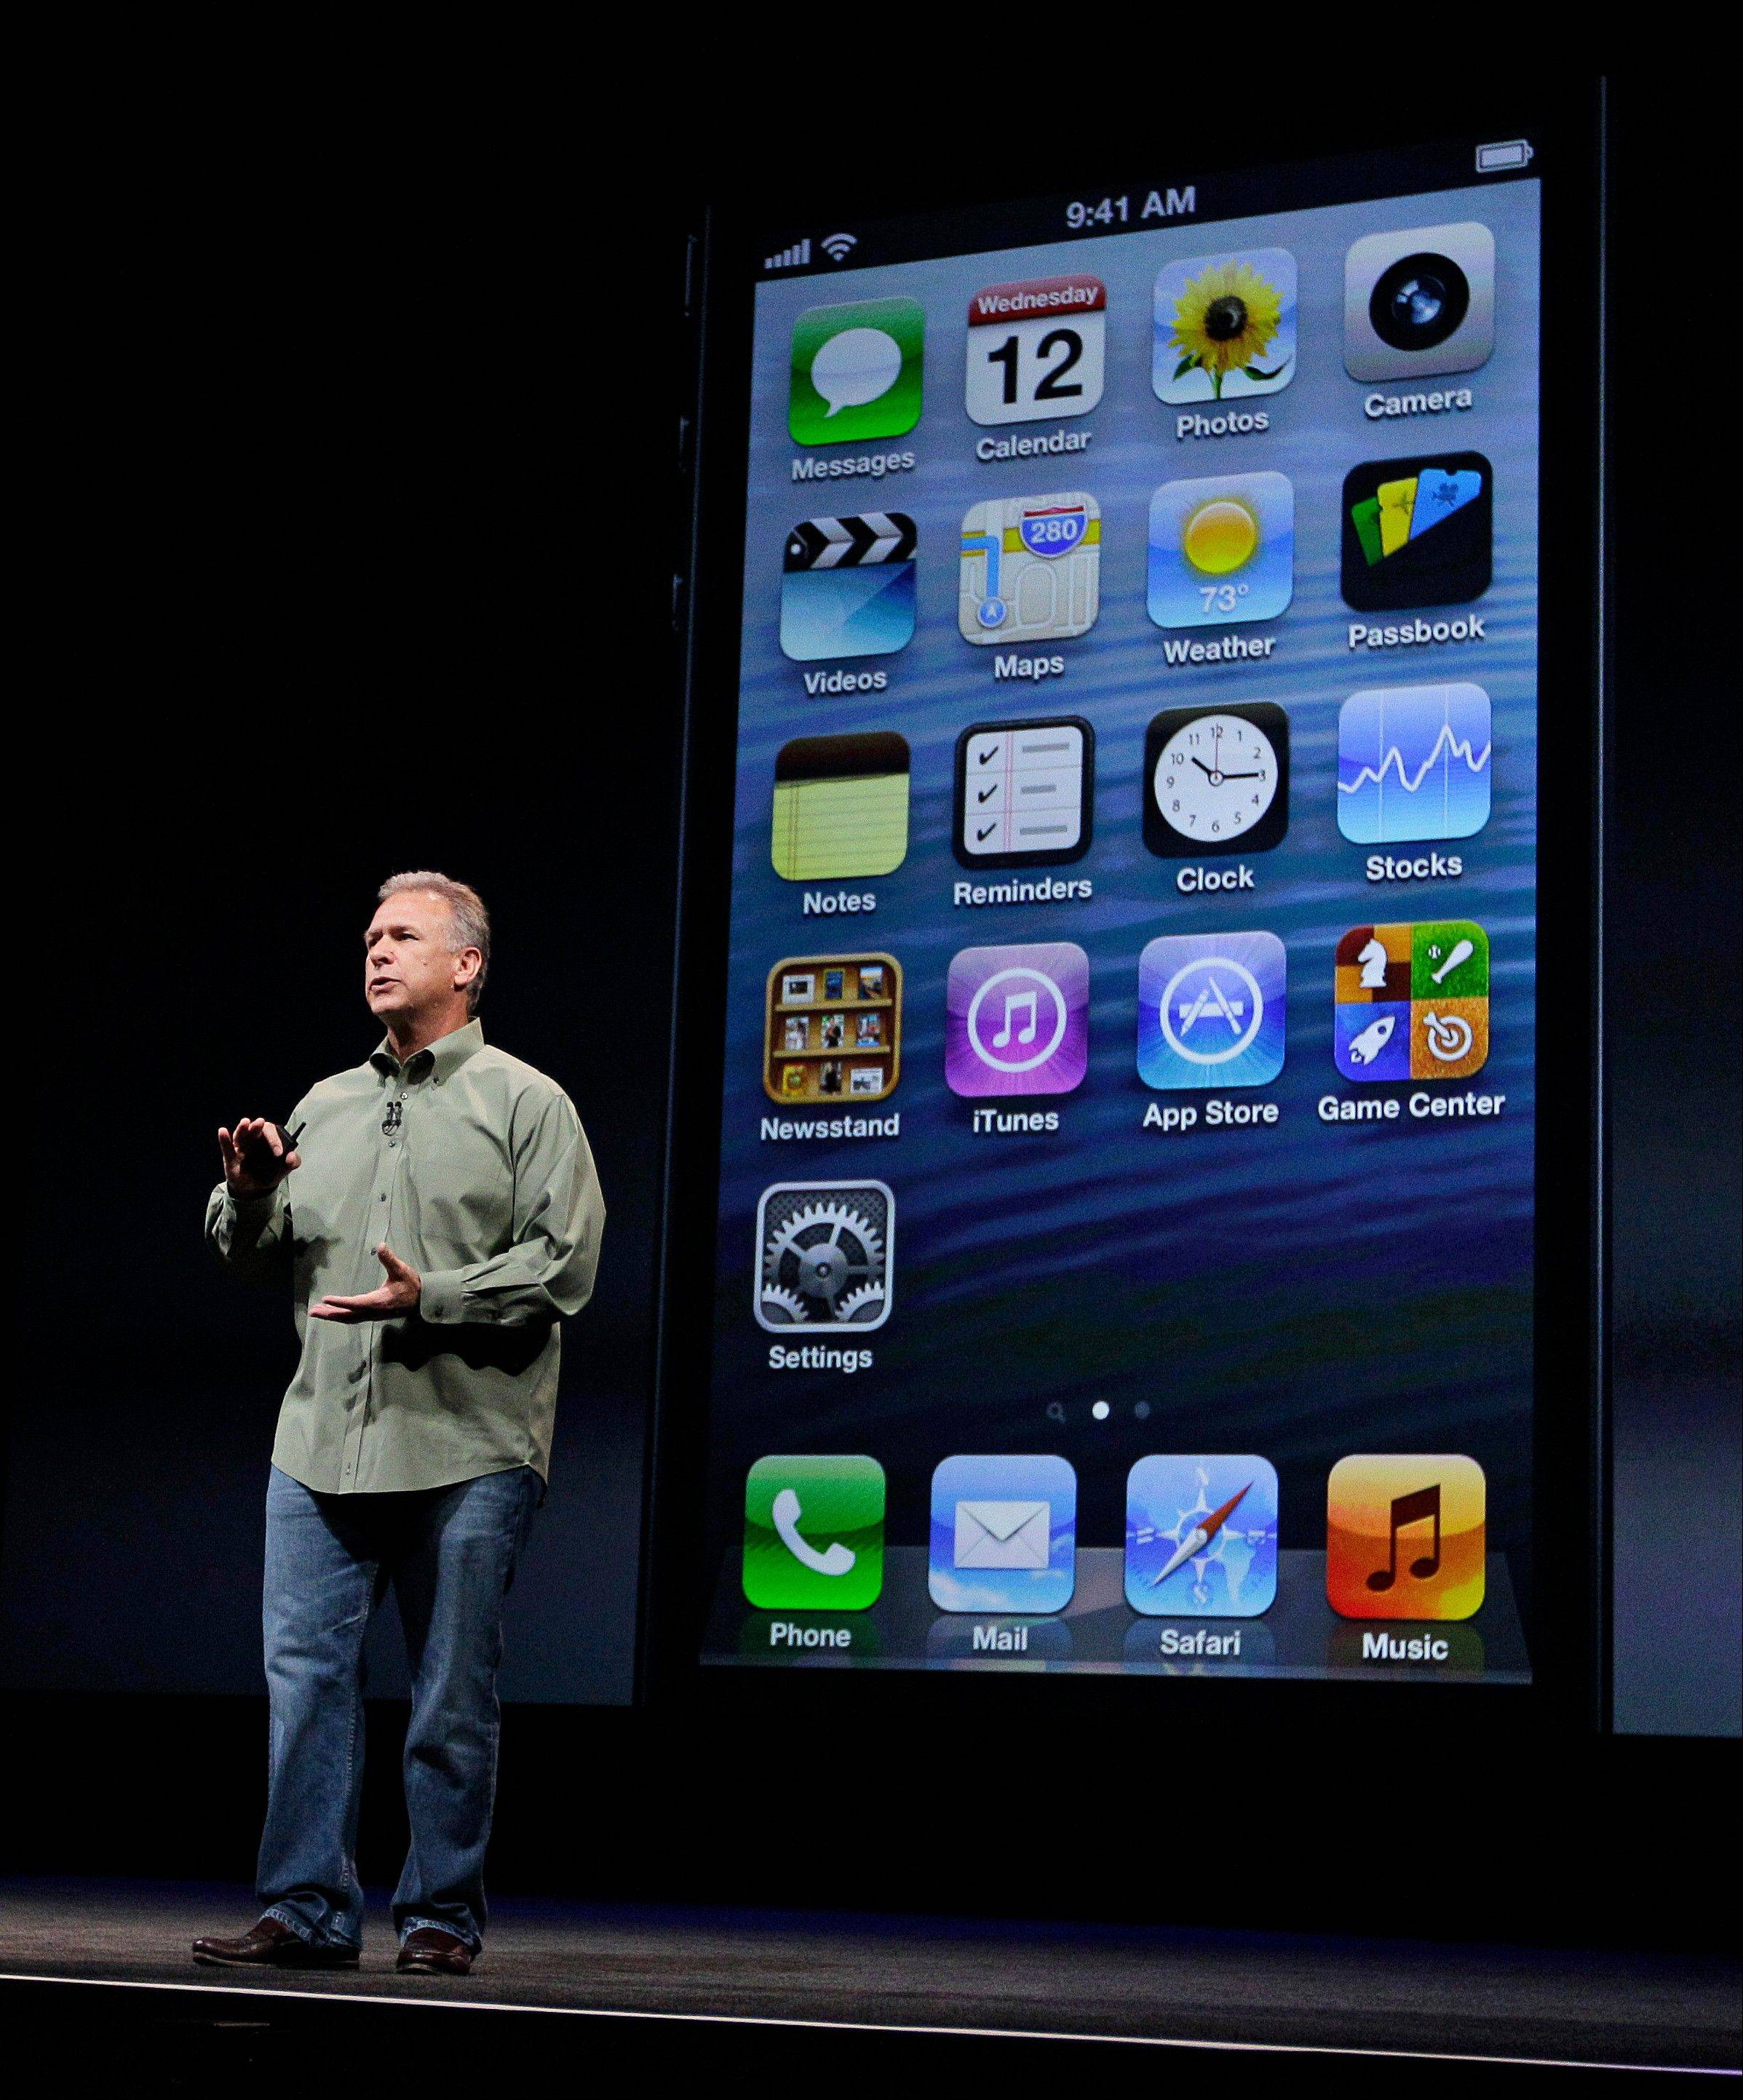 Phil Schiller, Apple's senior vice president of worldwide marketing, speaks on stage during an introduction of the new iPhone 5 at an Apple event in San Francisco, Wednesday Sept. 12, 2012.